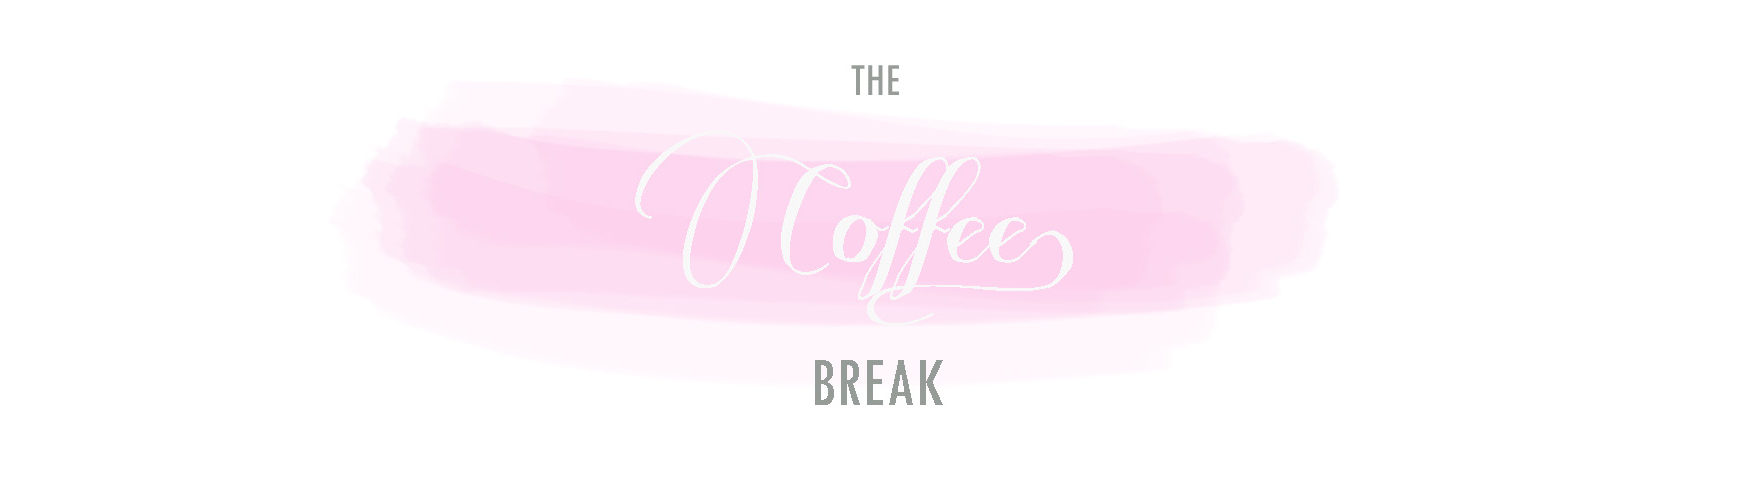 The Coffee Break